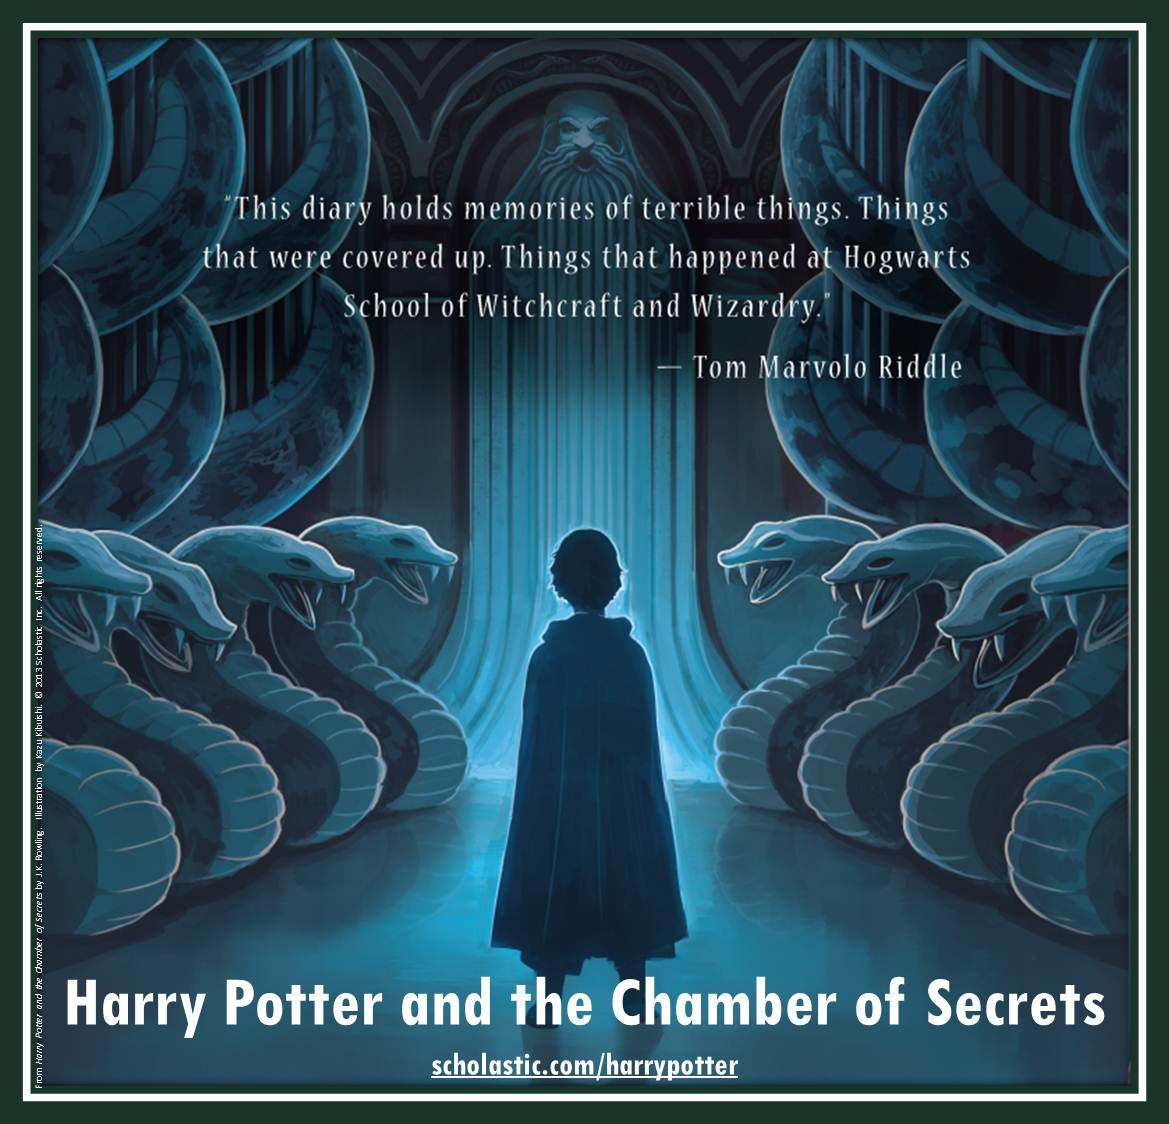 Book Cover Art Quotes : Good books for young souls i ve got harry potter s back